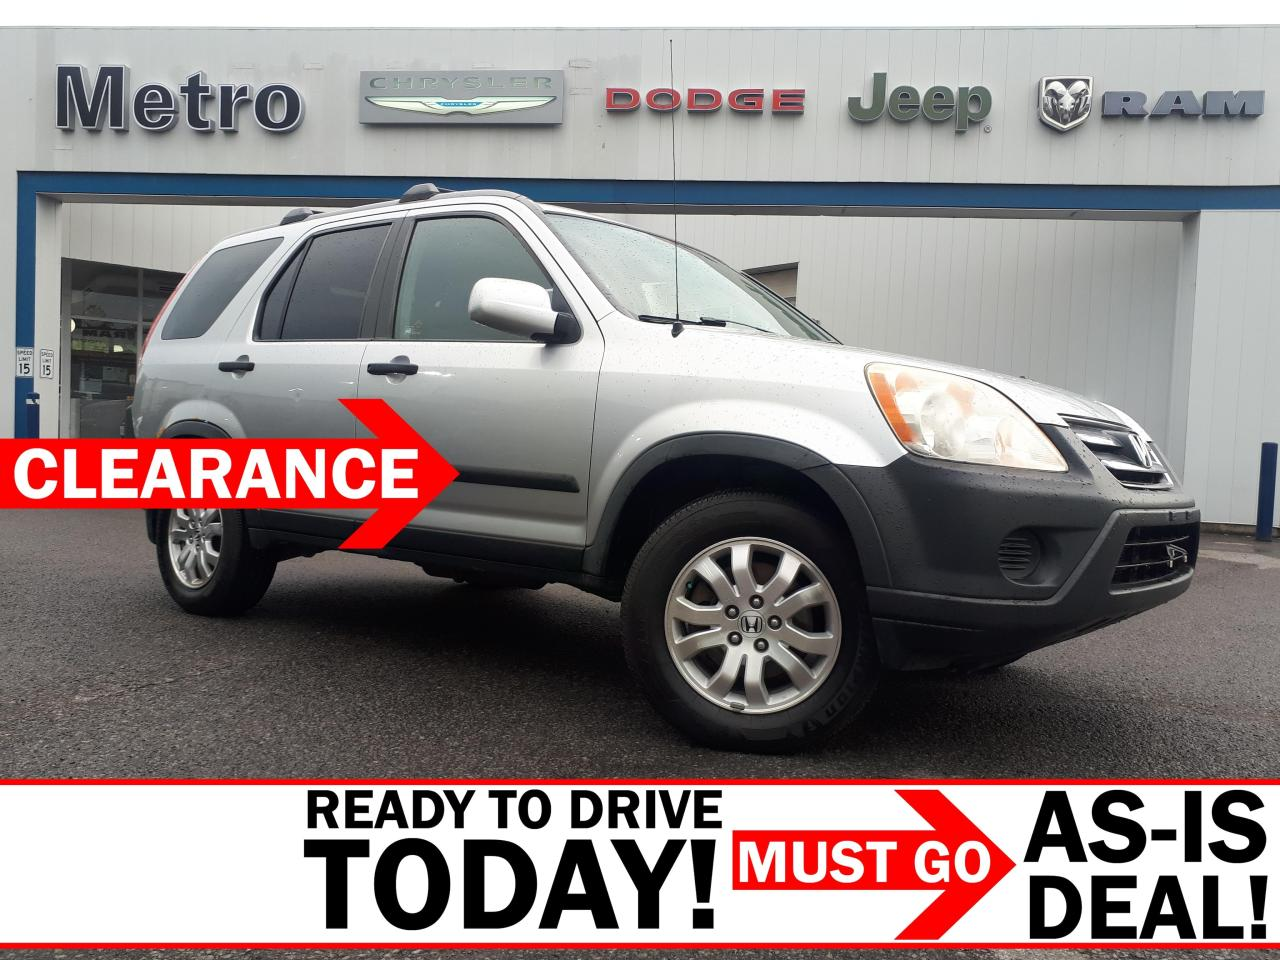 used 2006 honda cr-v ex as-is for sale in ottawa, ontario carpages.ca